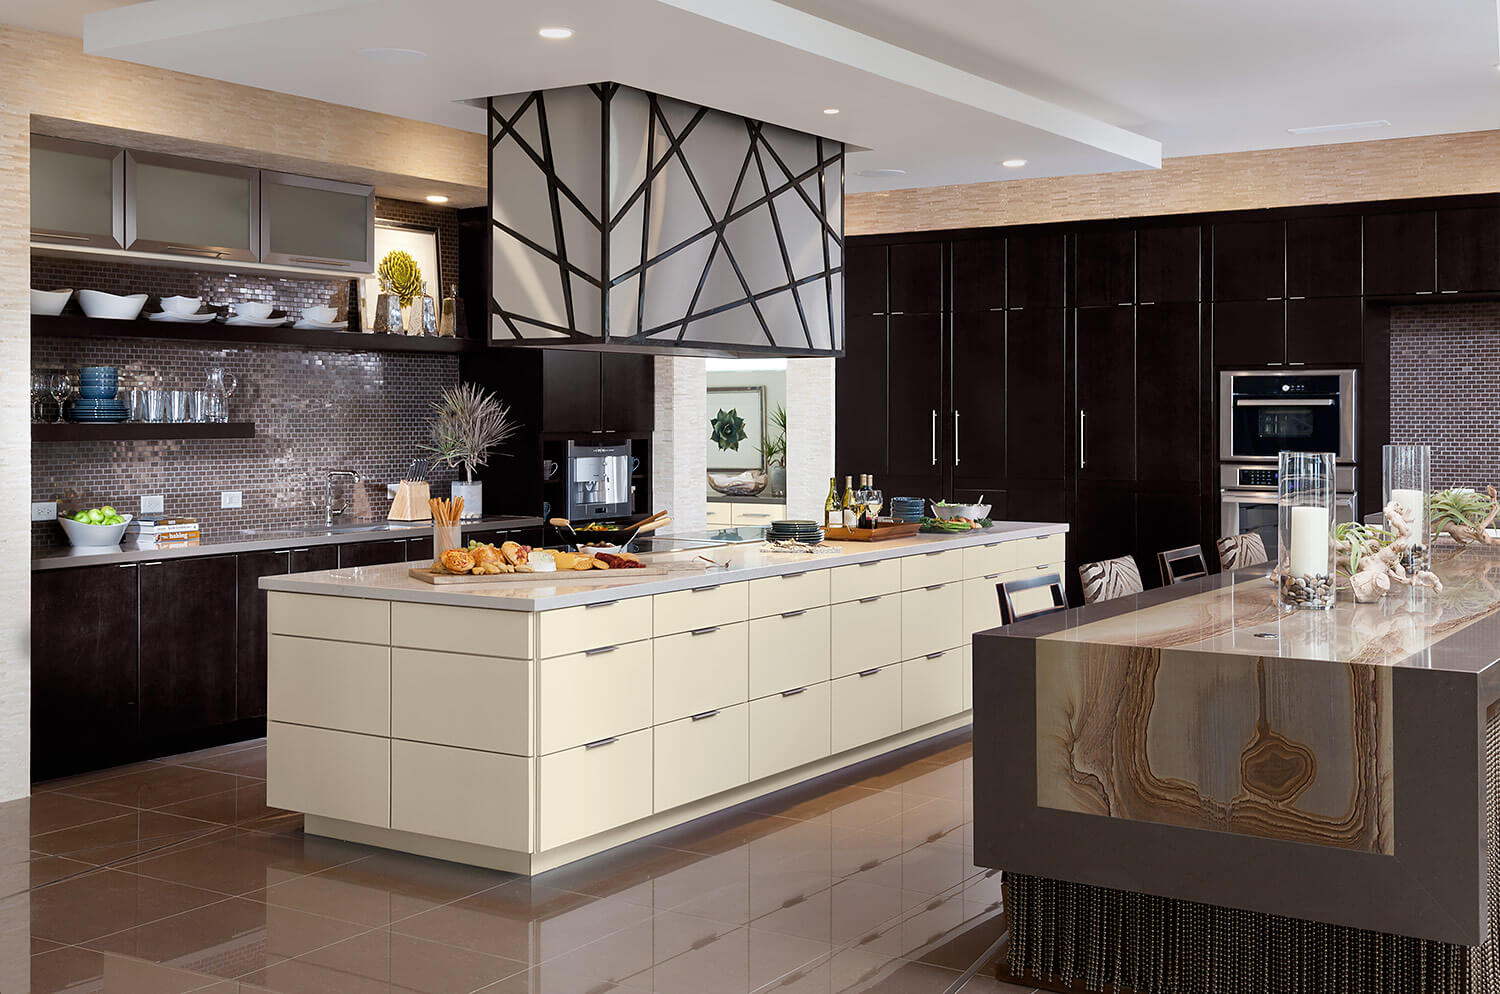 Timberlake Cabinetry Design And Service Spotlighted In 2014 New American  Home At IBS